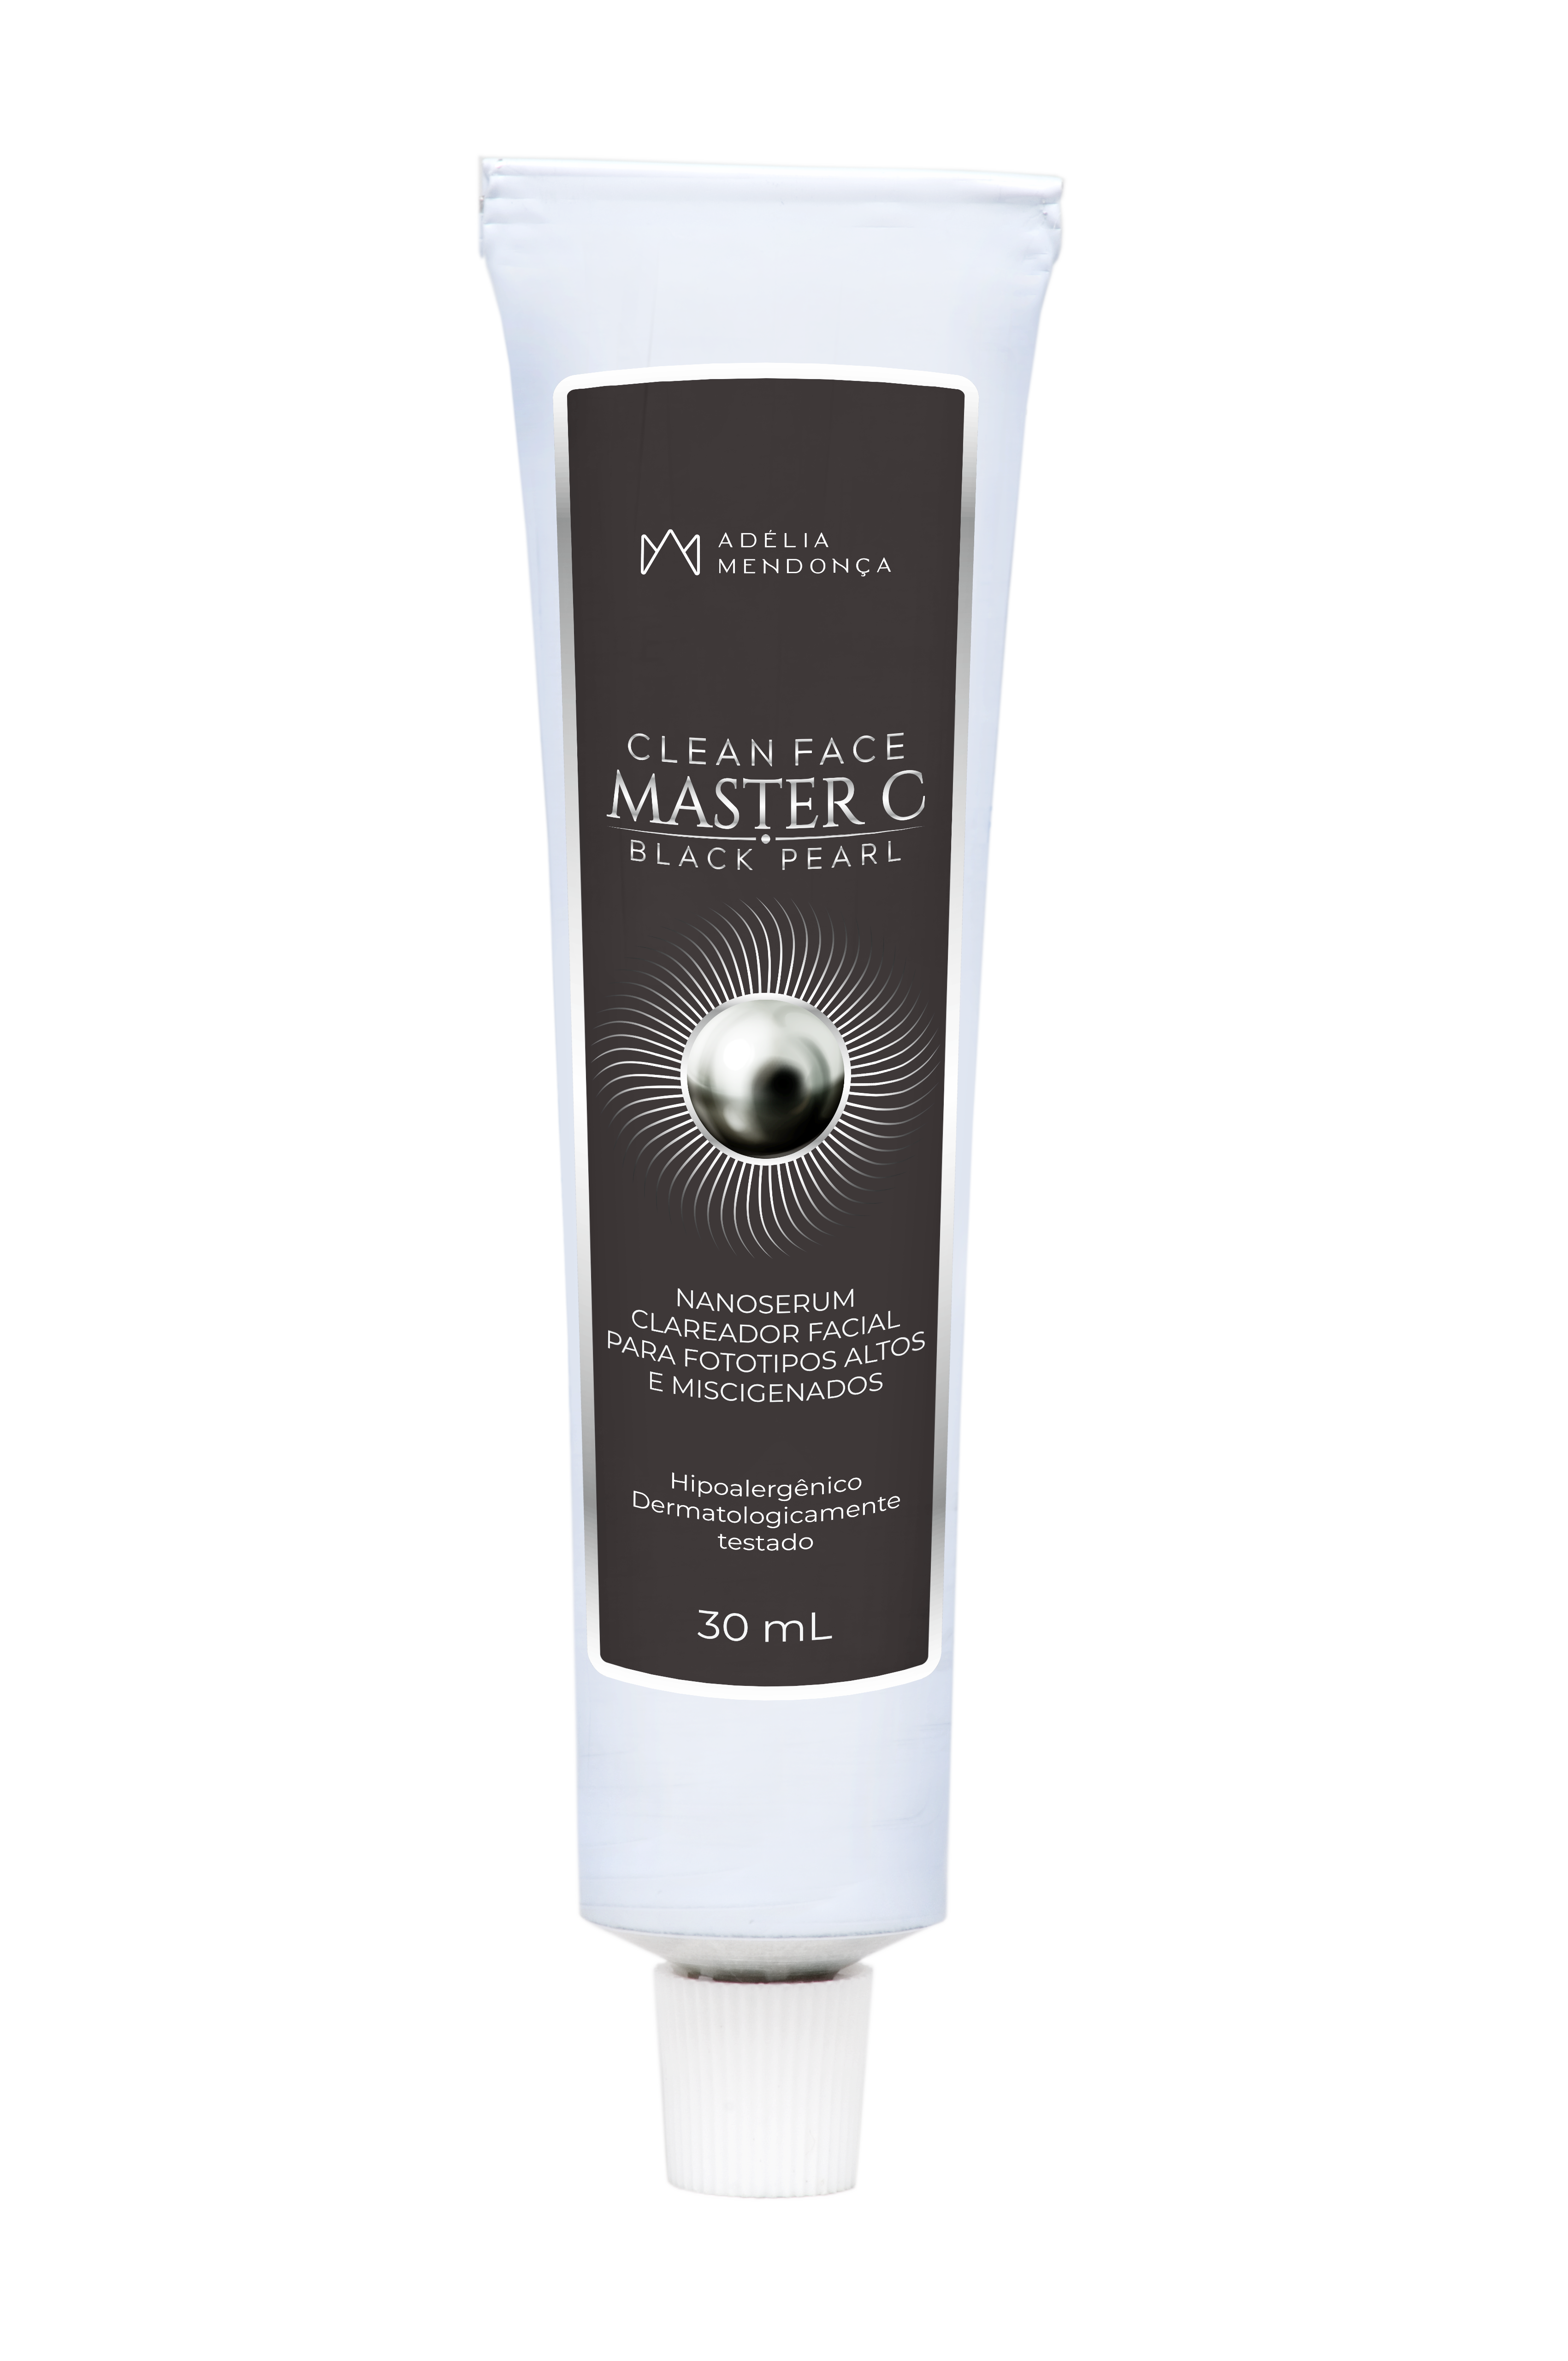 Clean Face Master C Black Pearl